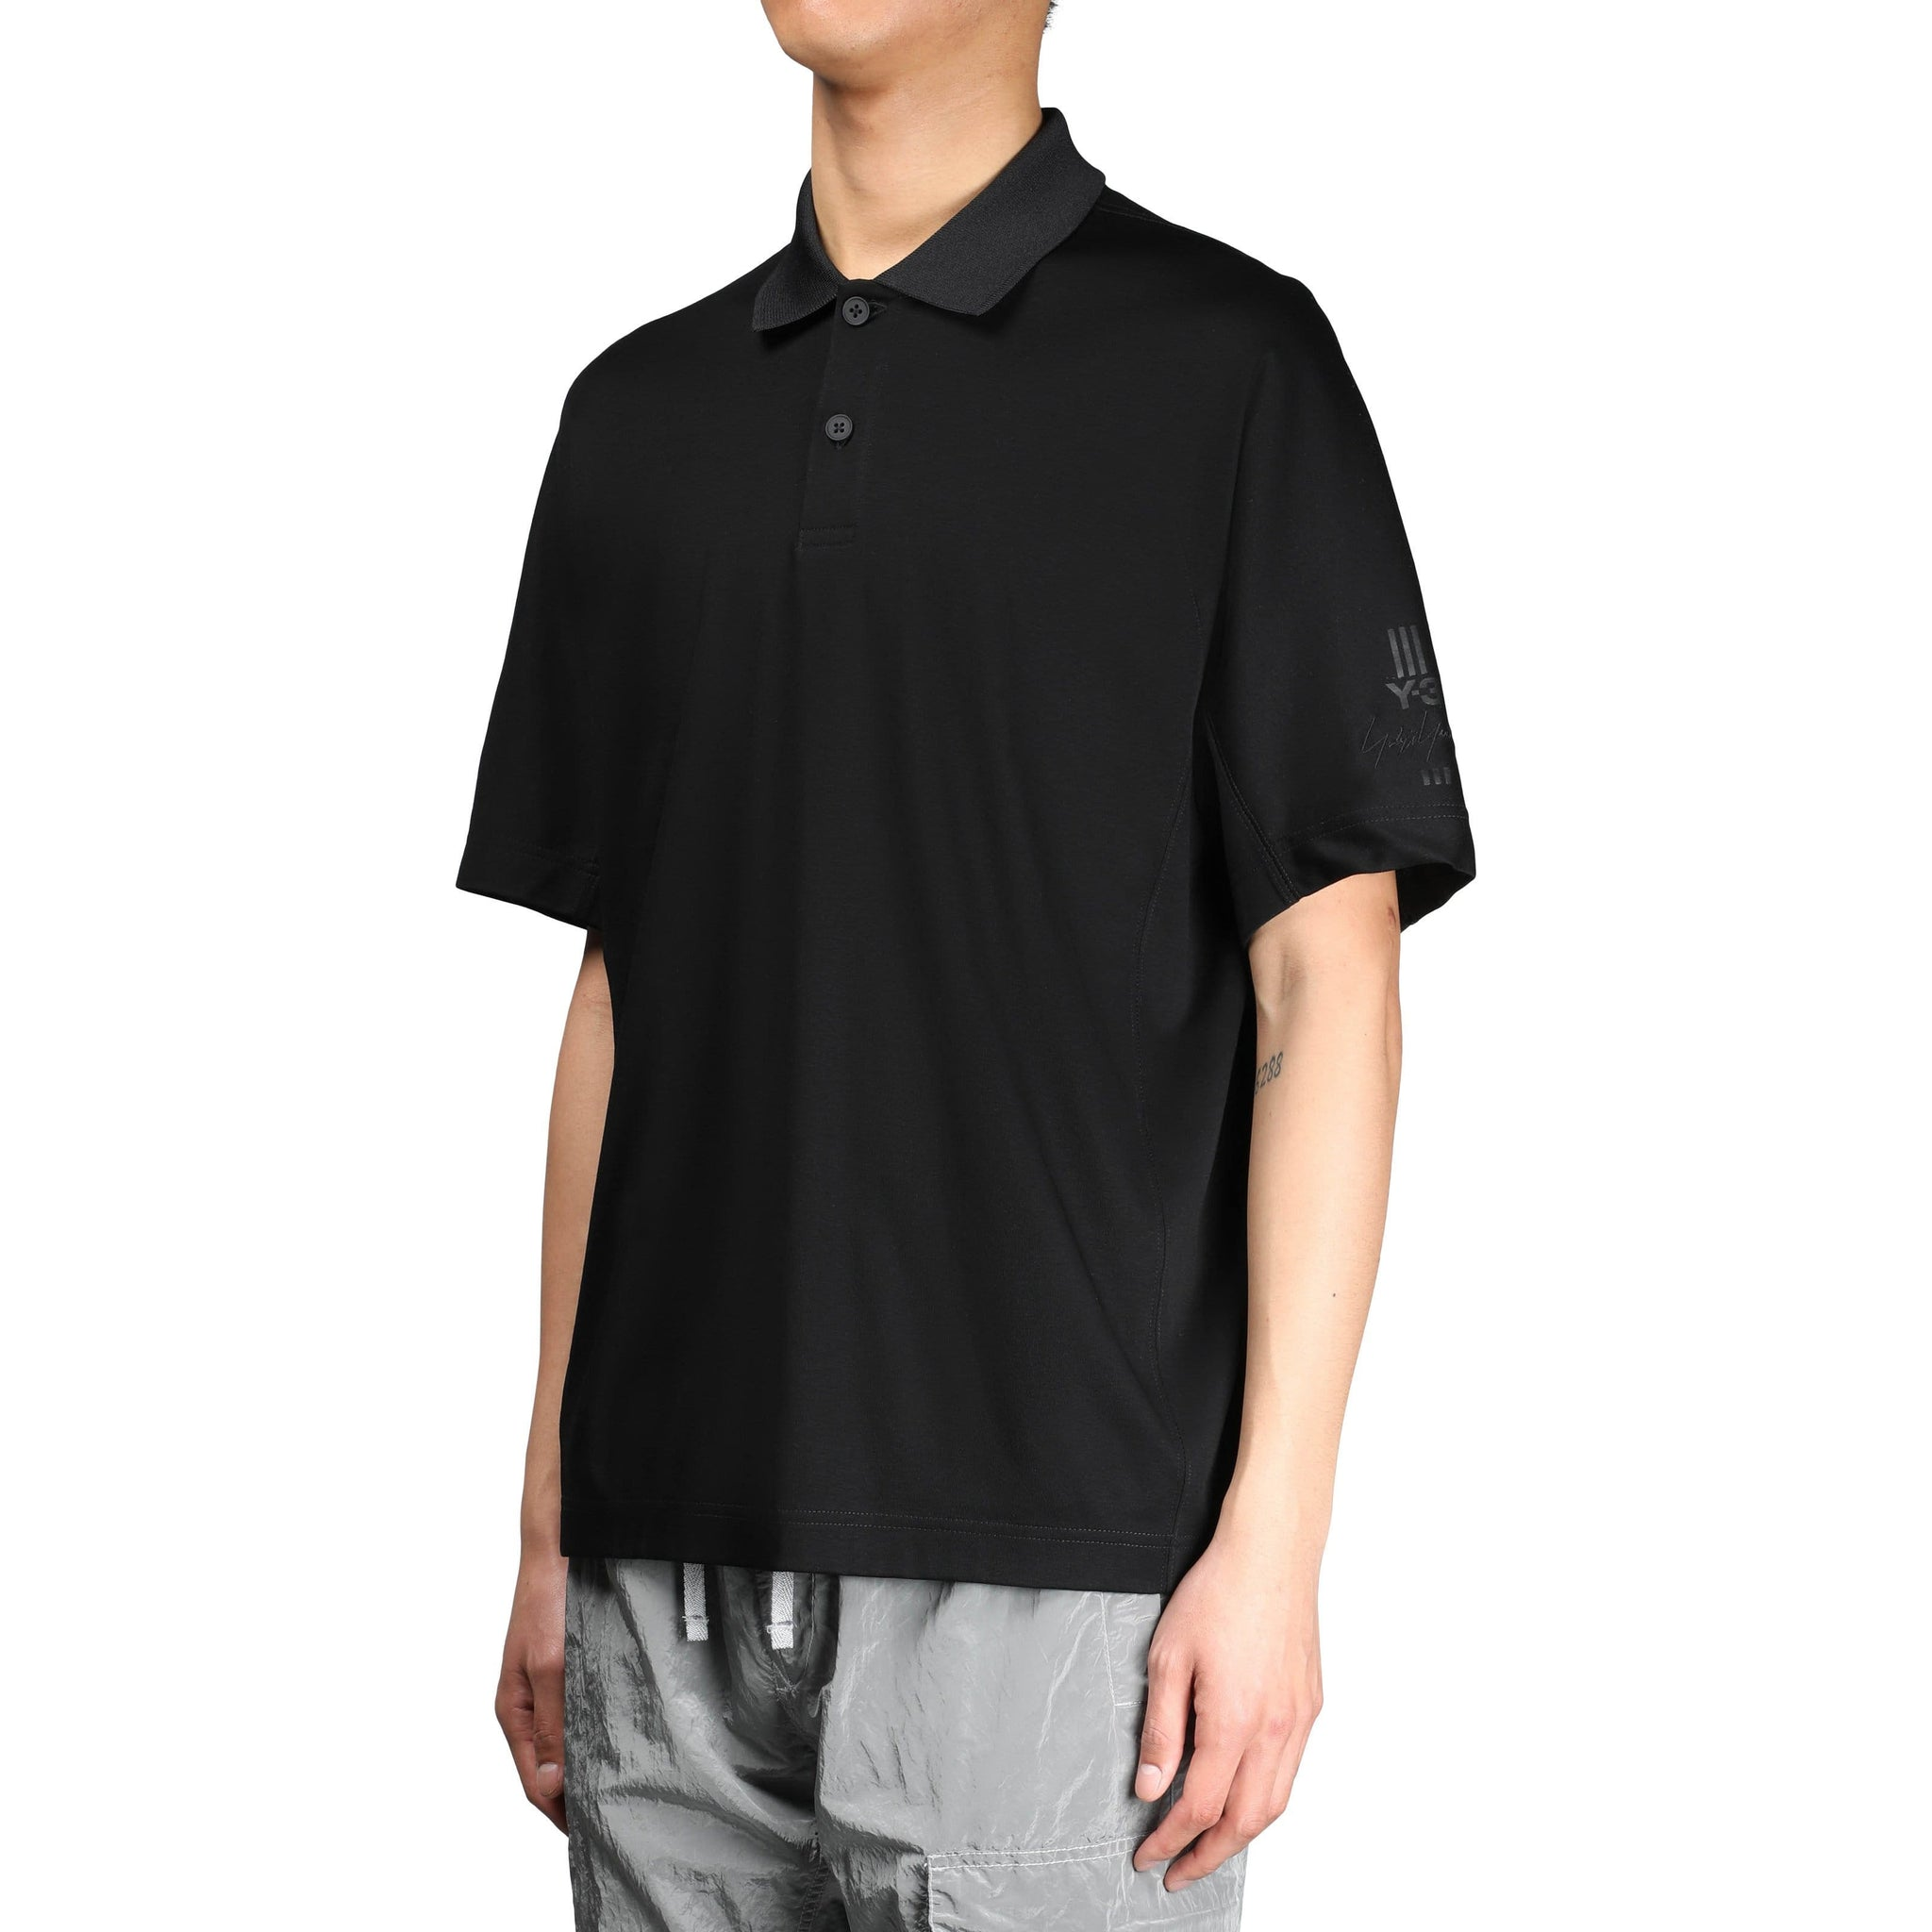 57723501 Y-3 NEW CLASSIC POLO SHIRT Black – Bodega